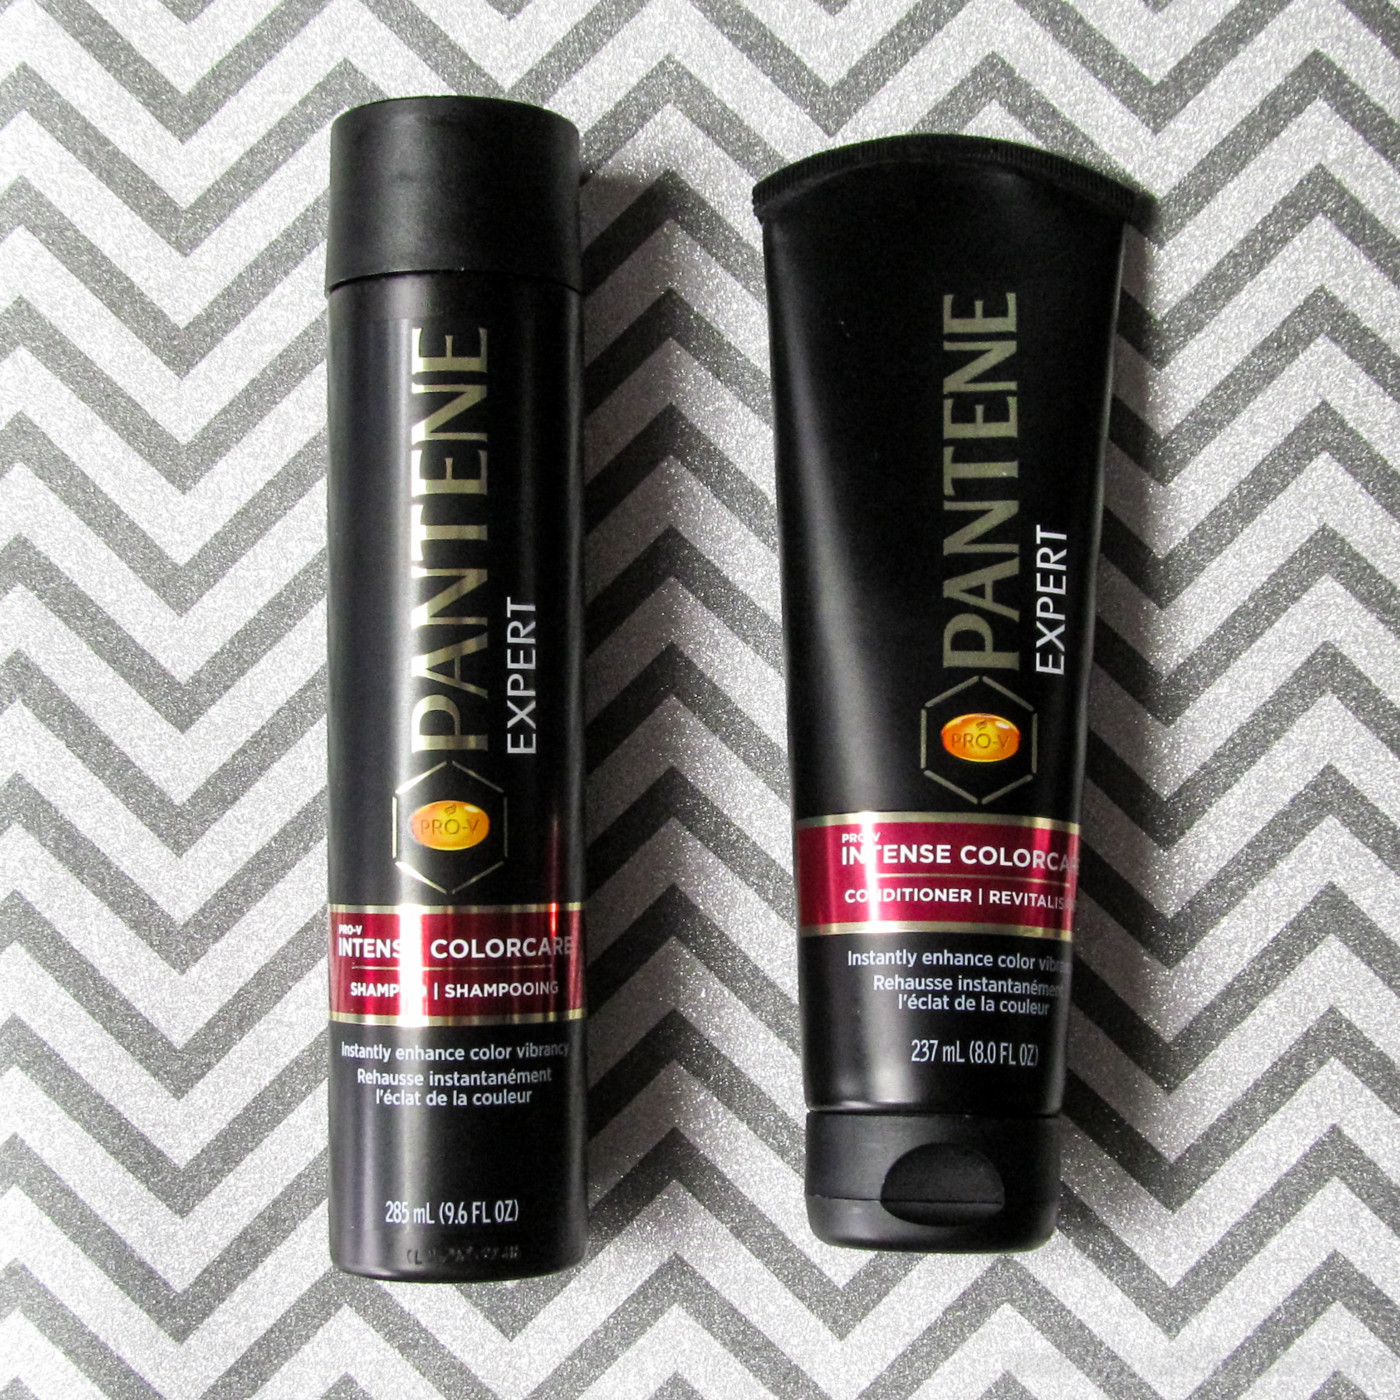 pantene expert, new pantene expert, pantene expert intense colorcare, best shampoo for colored hair, how do i make my color last, just dyed my hair, what to used on colored hair, how to keep my hair color from fading, pantene shampoo, pantene conditioner